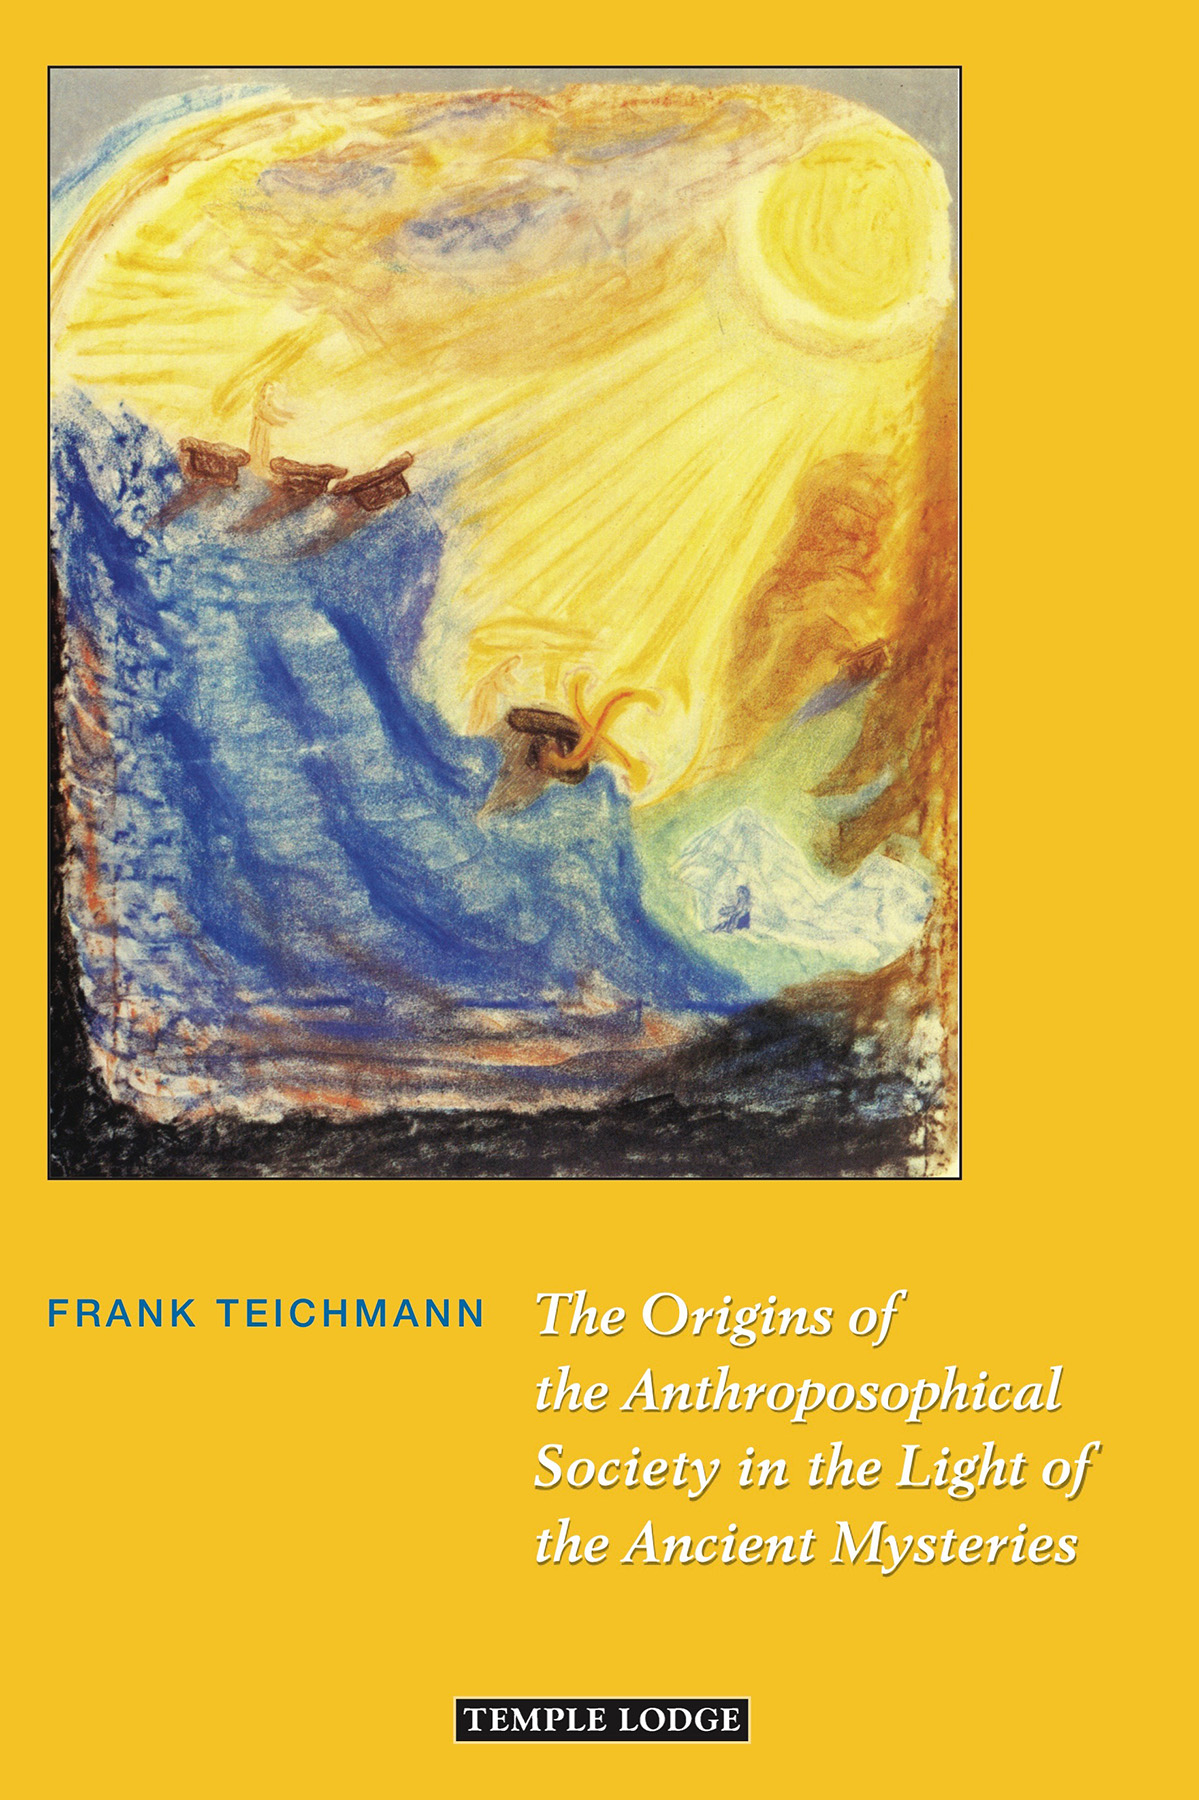 The Origins of the Anthroposophical Society in the Light of the Ancient Mysteries